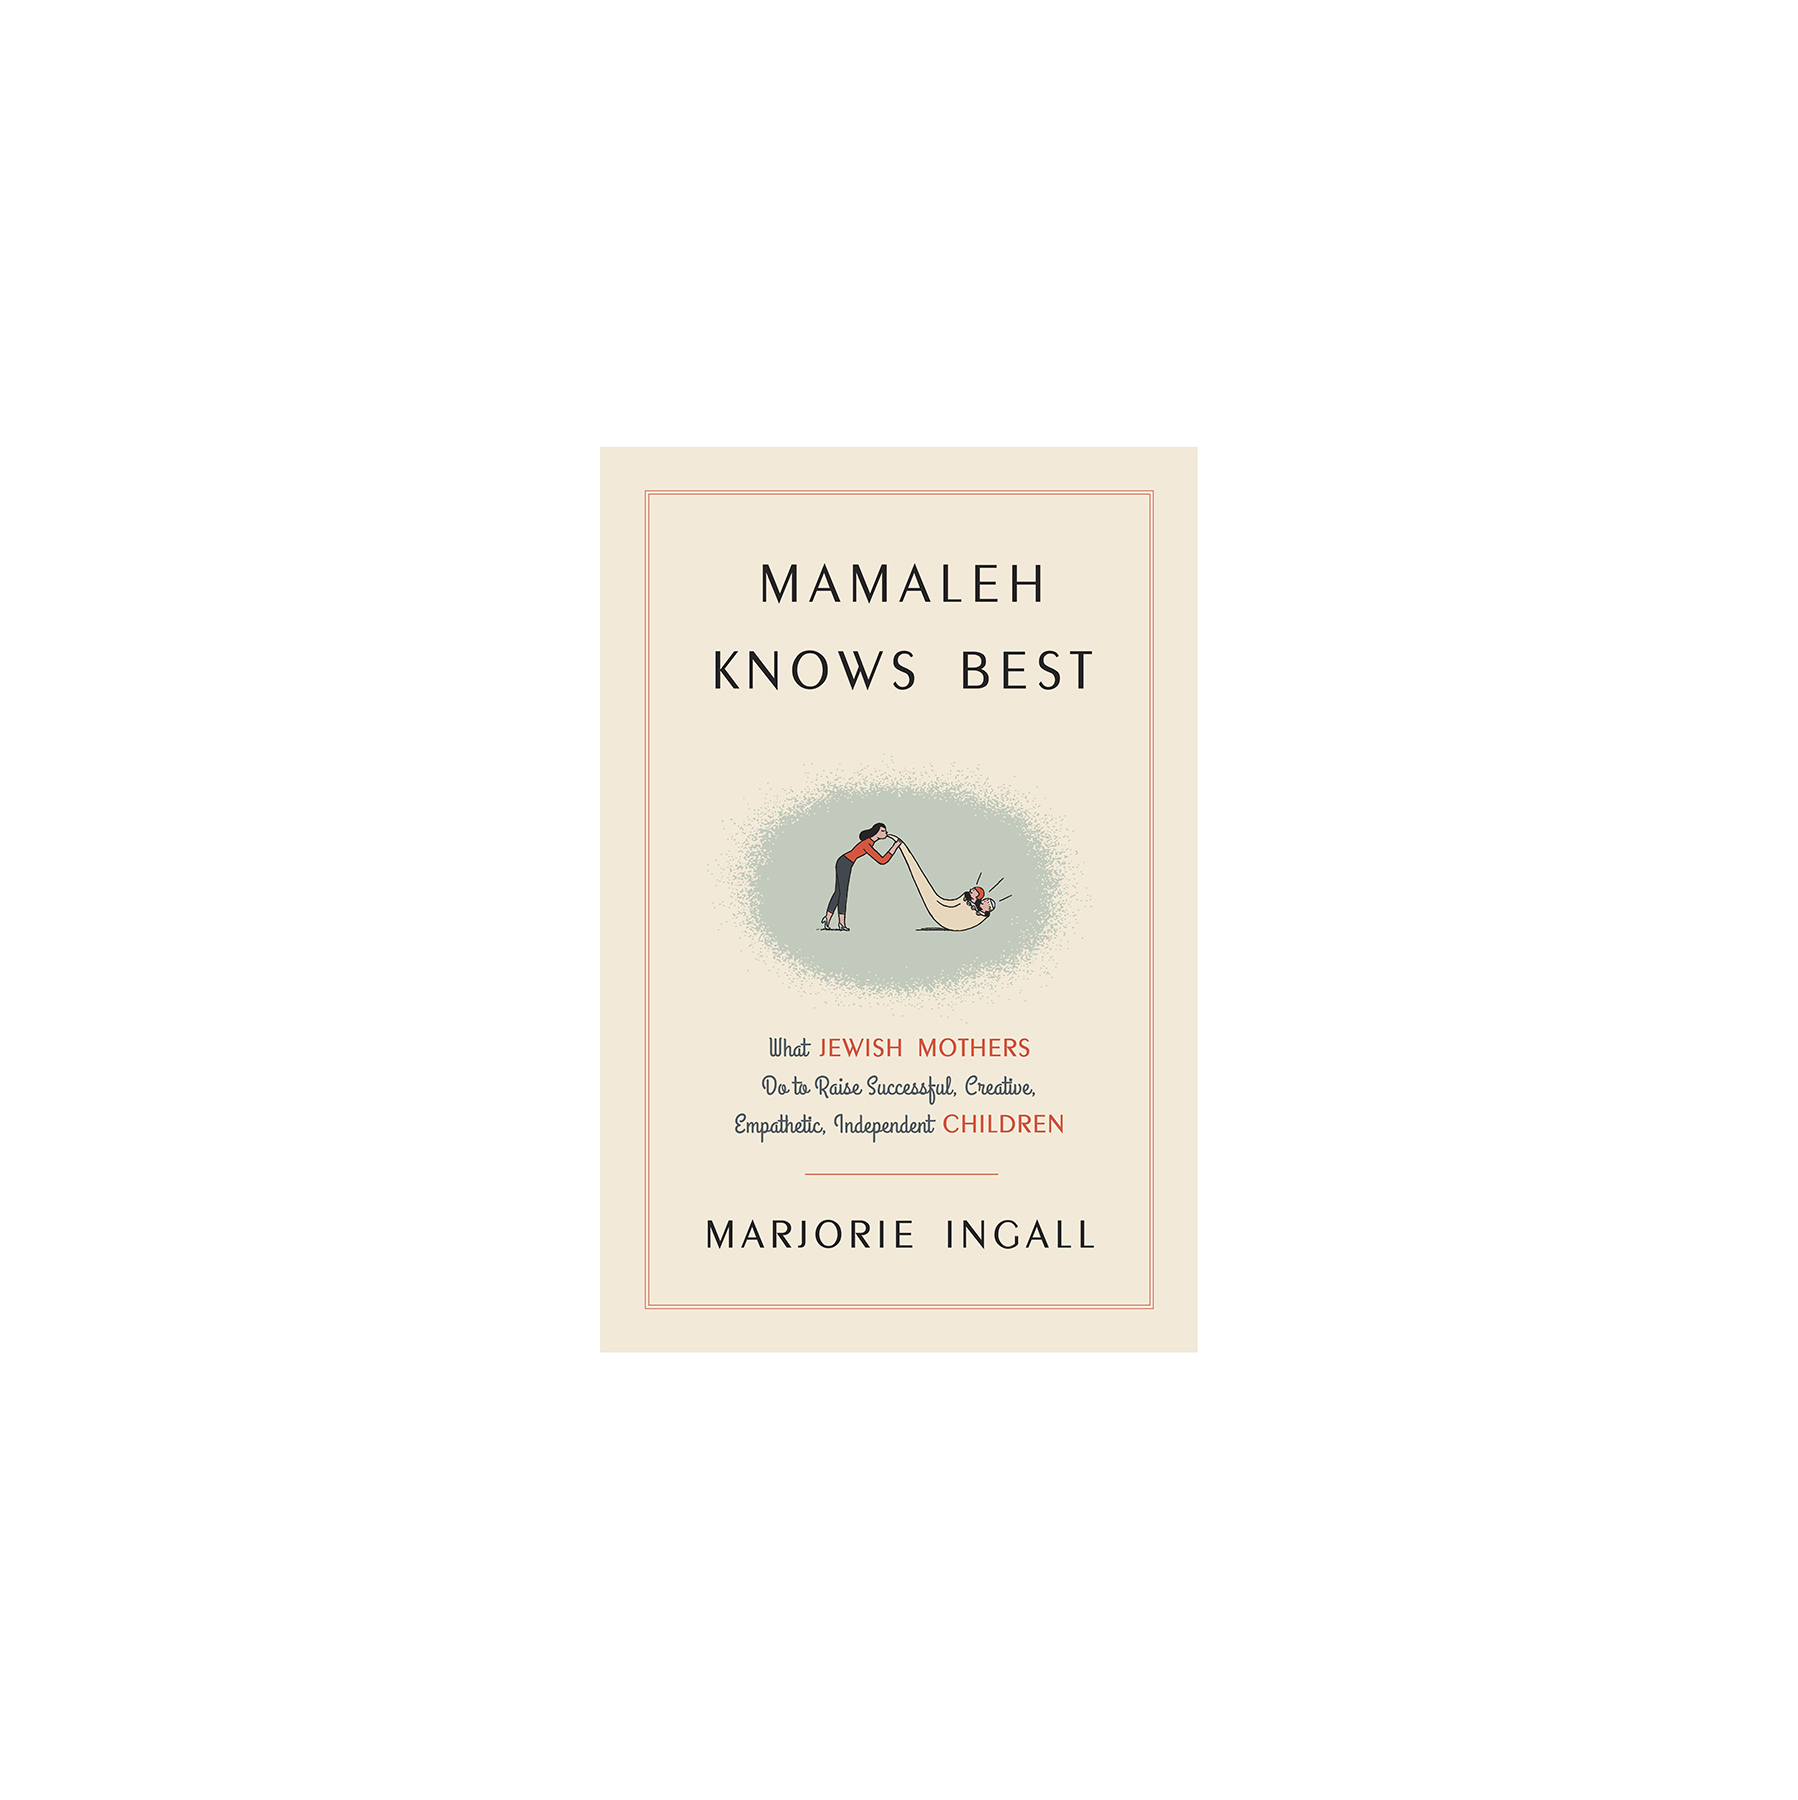 Mamaleh Knows Best, by Marjorie Ingall